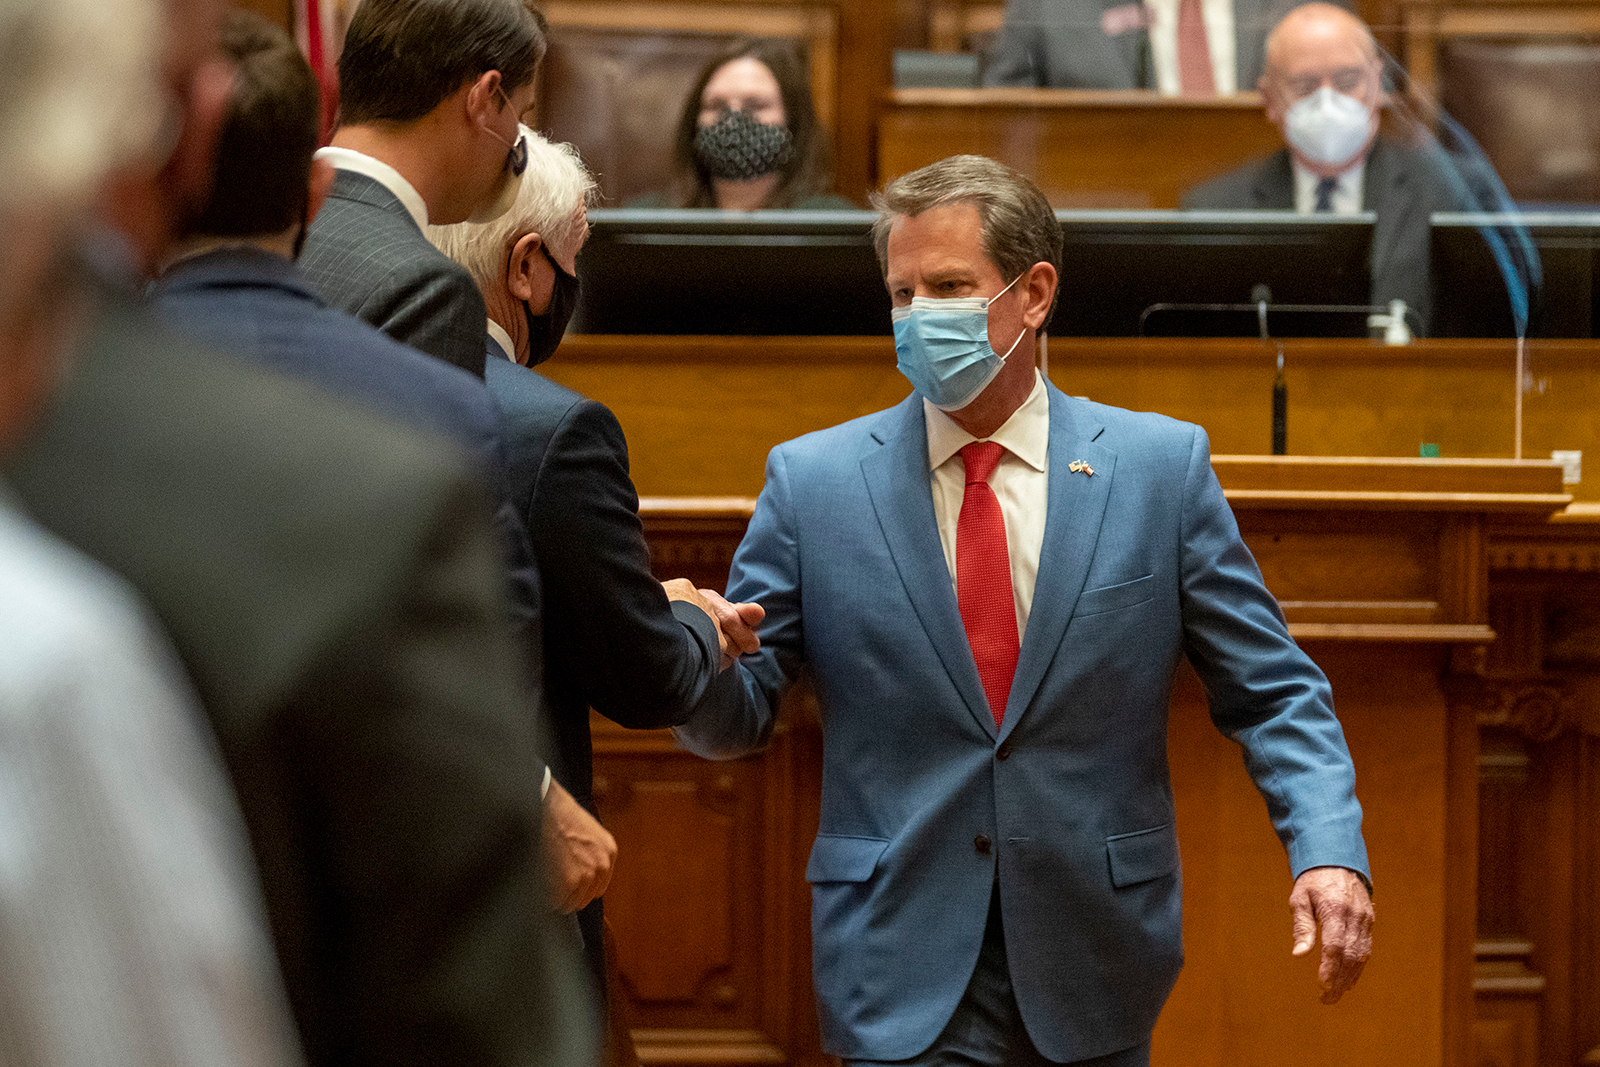 Brian Kemp is greeted as he visits the House Chambers in Atlanta, on Friday, June 26.